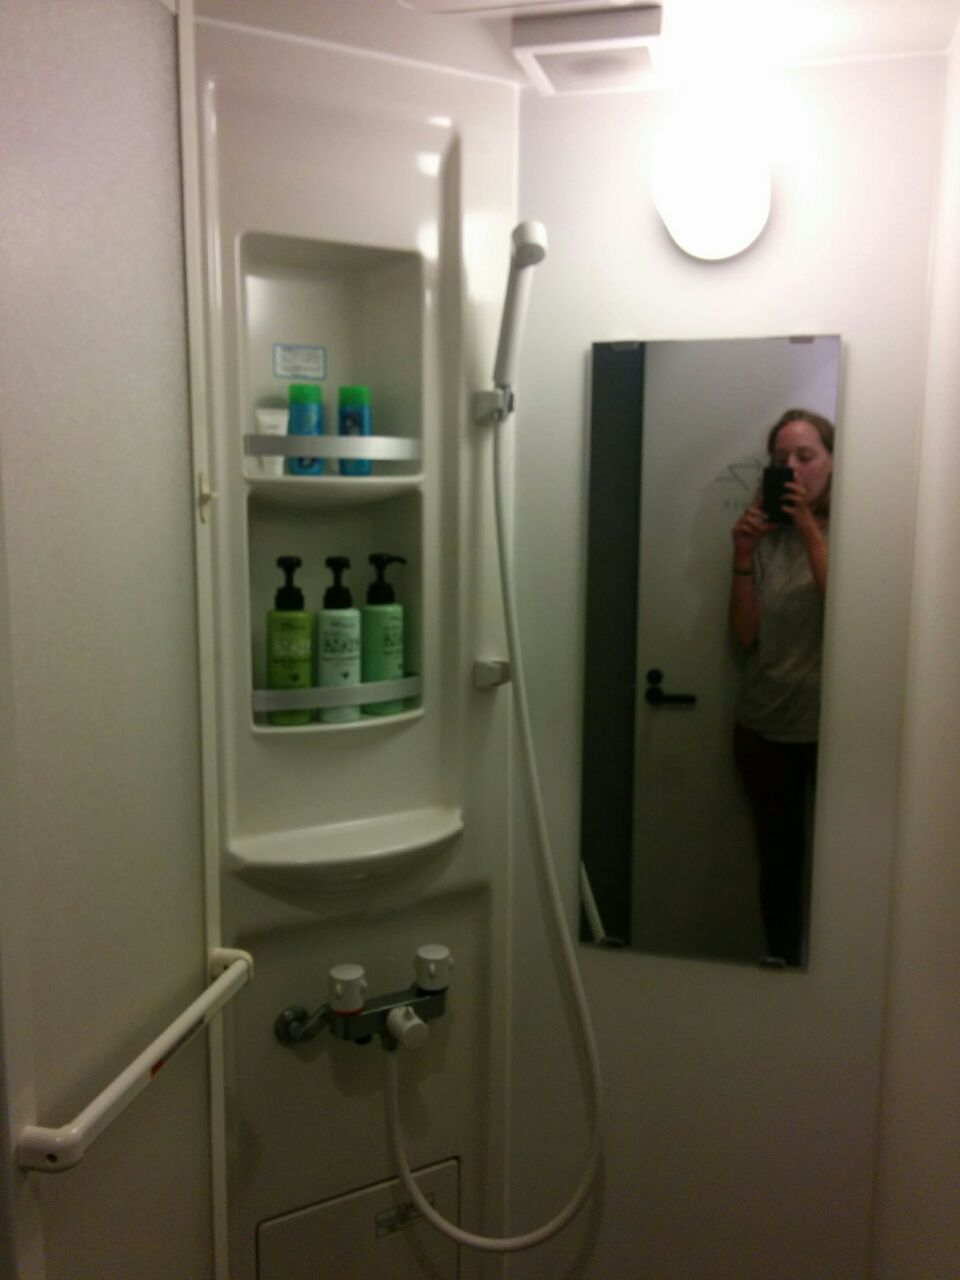 ImanoHostel-bathroom2.jpg